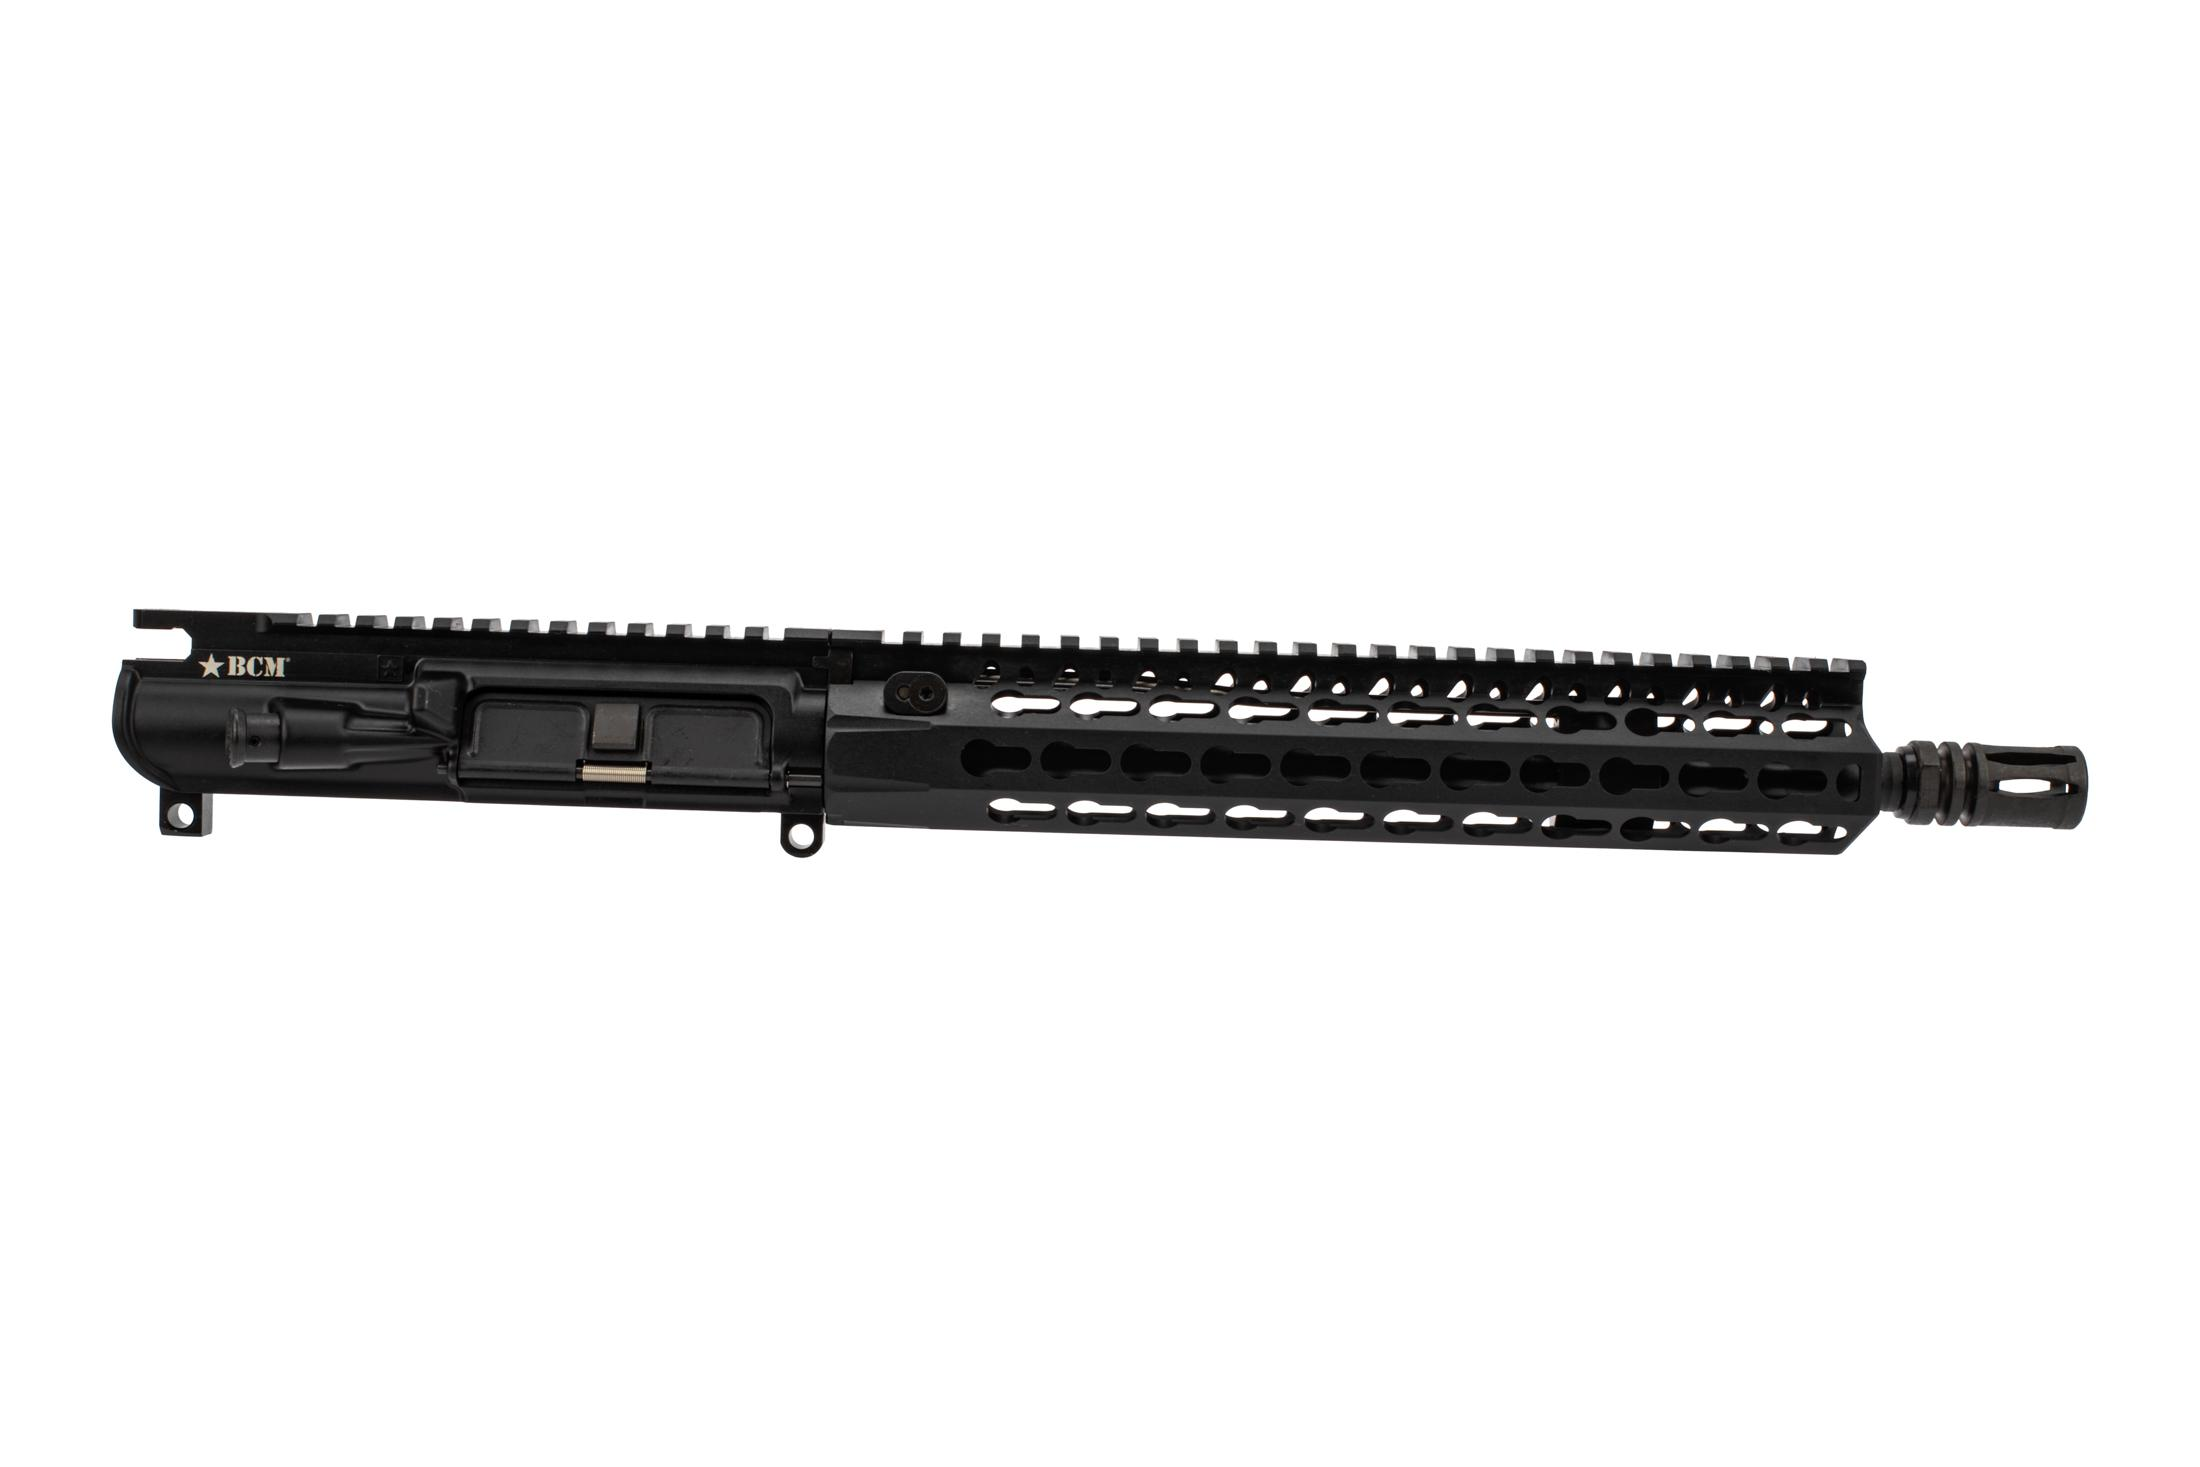 Bravo Company USA MK2 Enhanced Lightweight barreled AR15 upper is chambered in 5.56 NATO